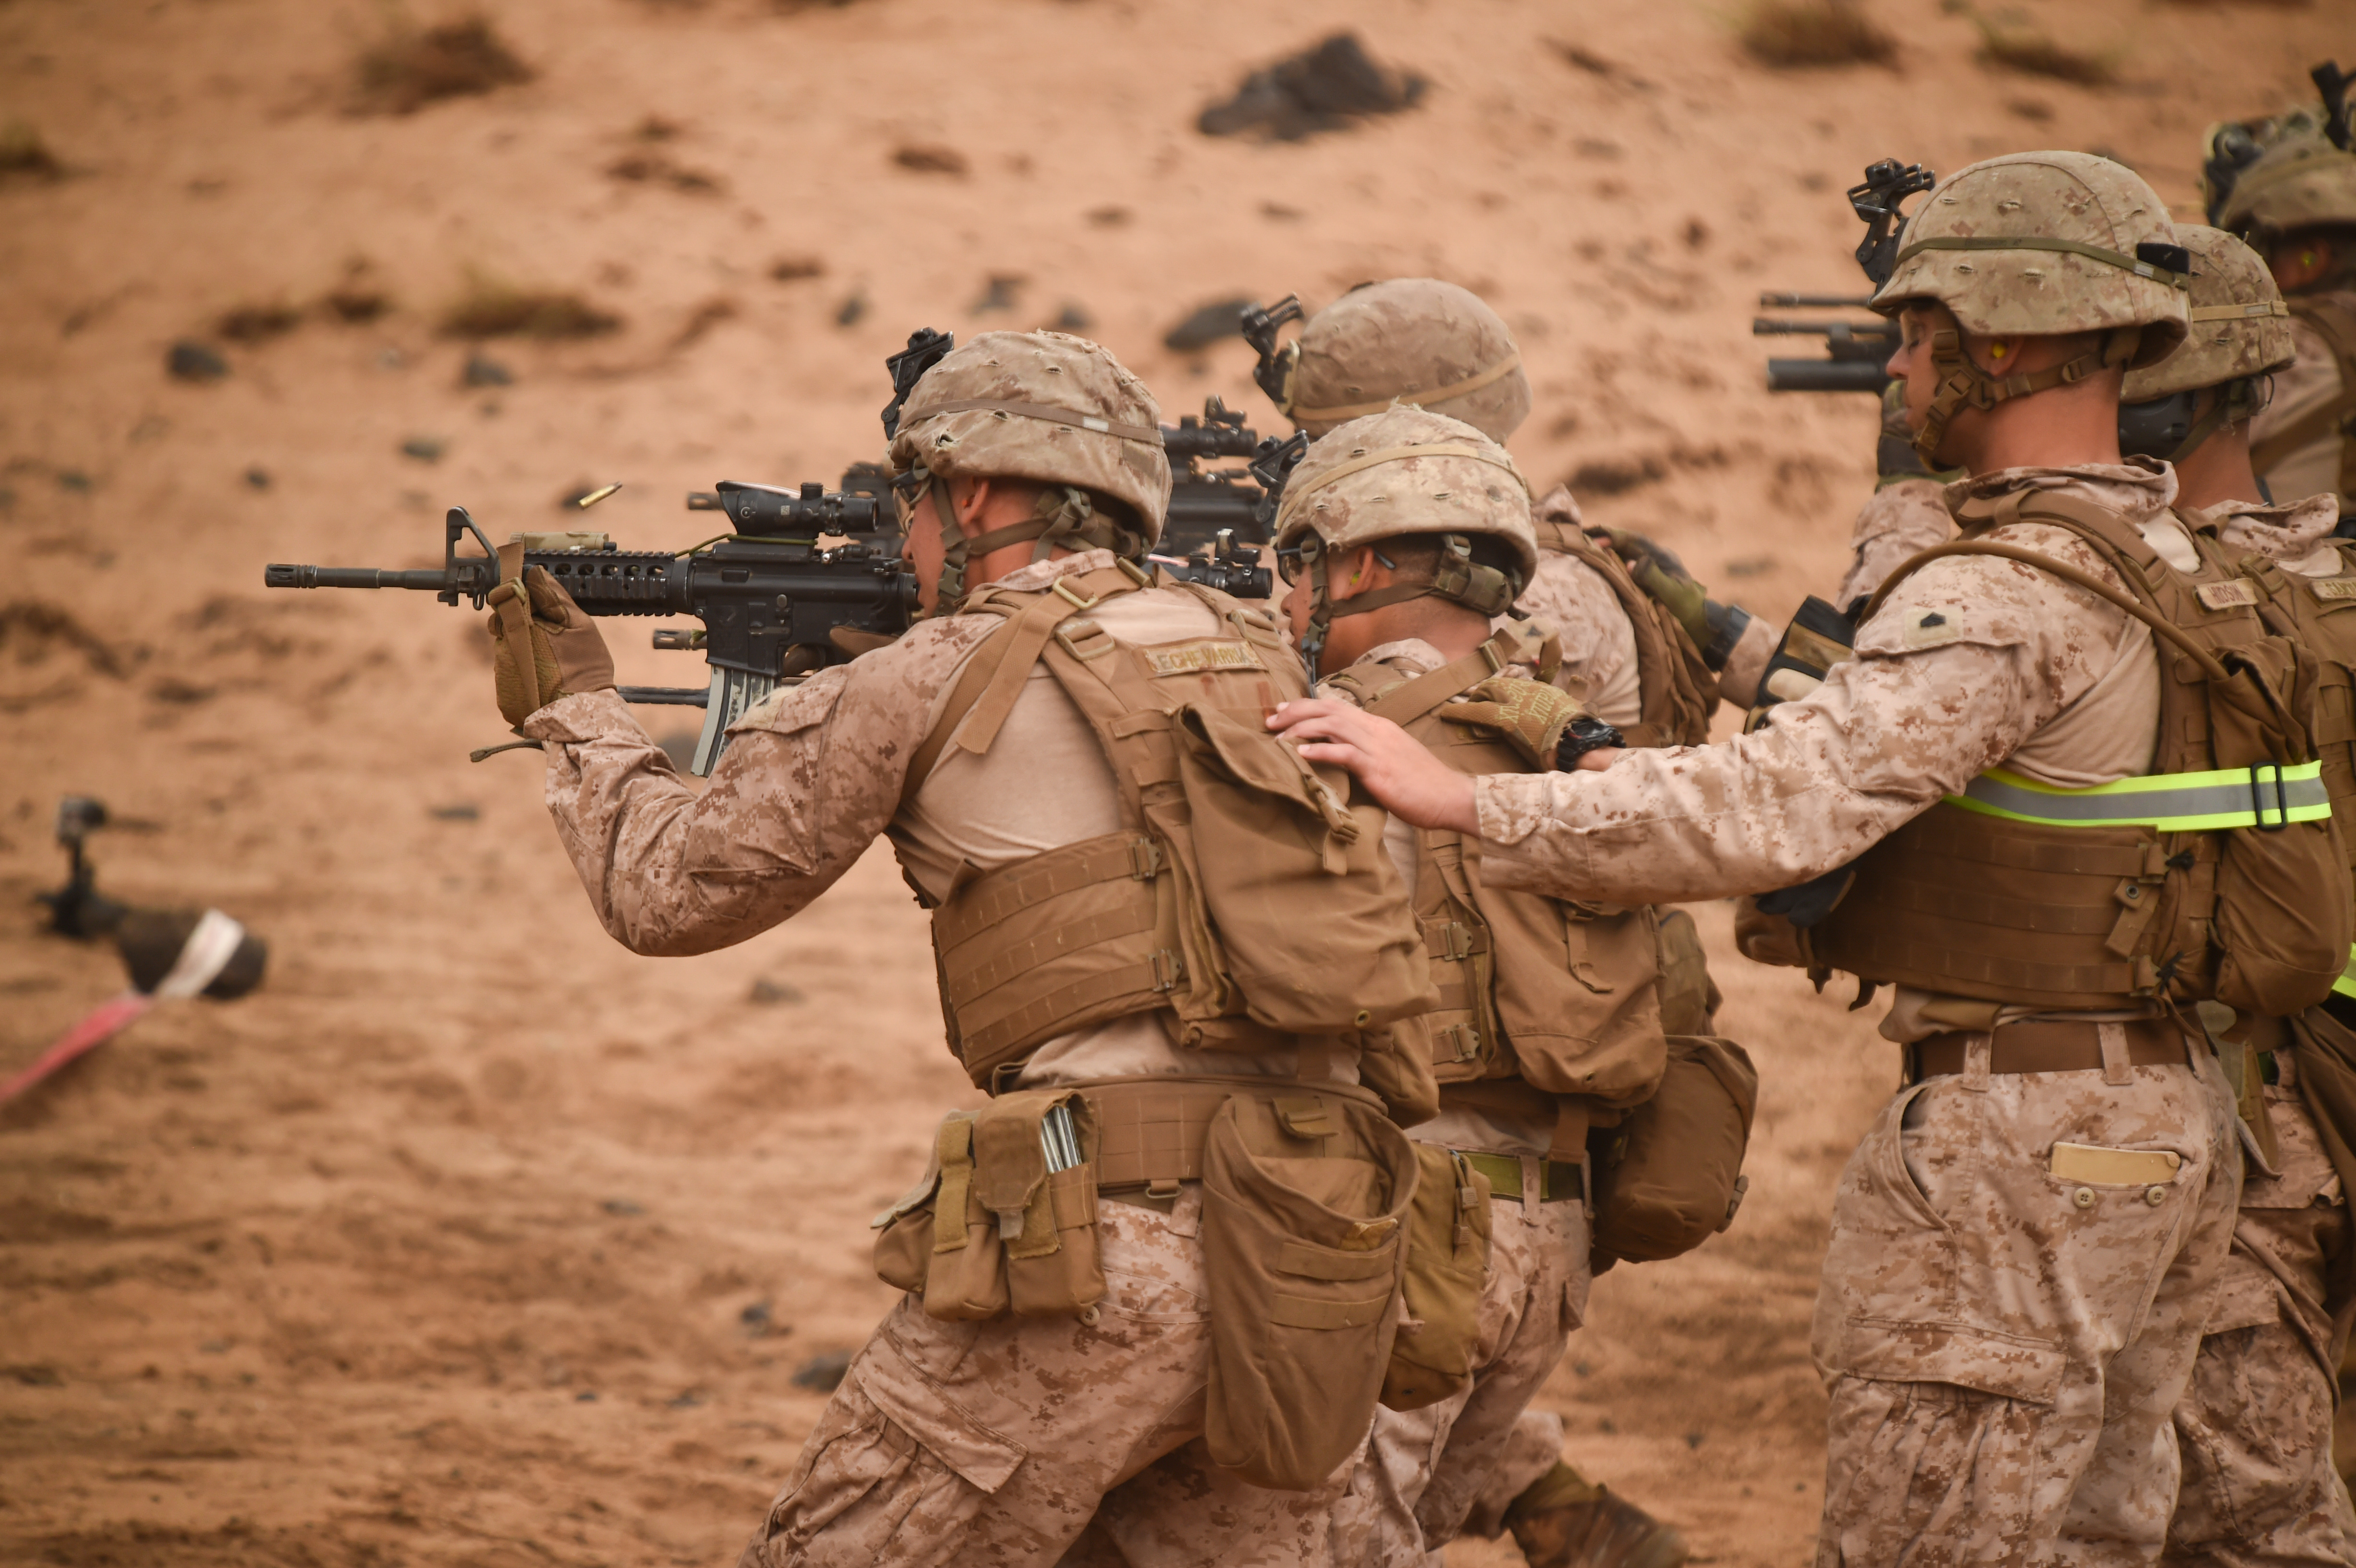 U.S. Marines with Alpha Company, 1st Battalion, 11th Marine Expeditionary Unit (MEU), move downrange while being guided during a Combat Marksmanship Program shoot, Feb. 14, 2017, at Arta Beach in Djibouti. Marines worked on accurately engaging a target while moving and under physical stress. A MEU is a forward-deployed, flexible sea-based Marine air-ground task force ready to respond to crisis and conduct limited contingency operations. (U.S. Air National Guard photo by Staff Sgt. Penny Snoozy)